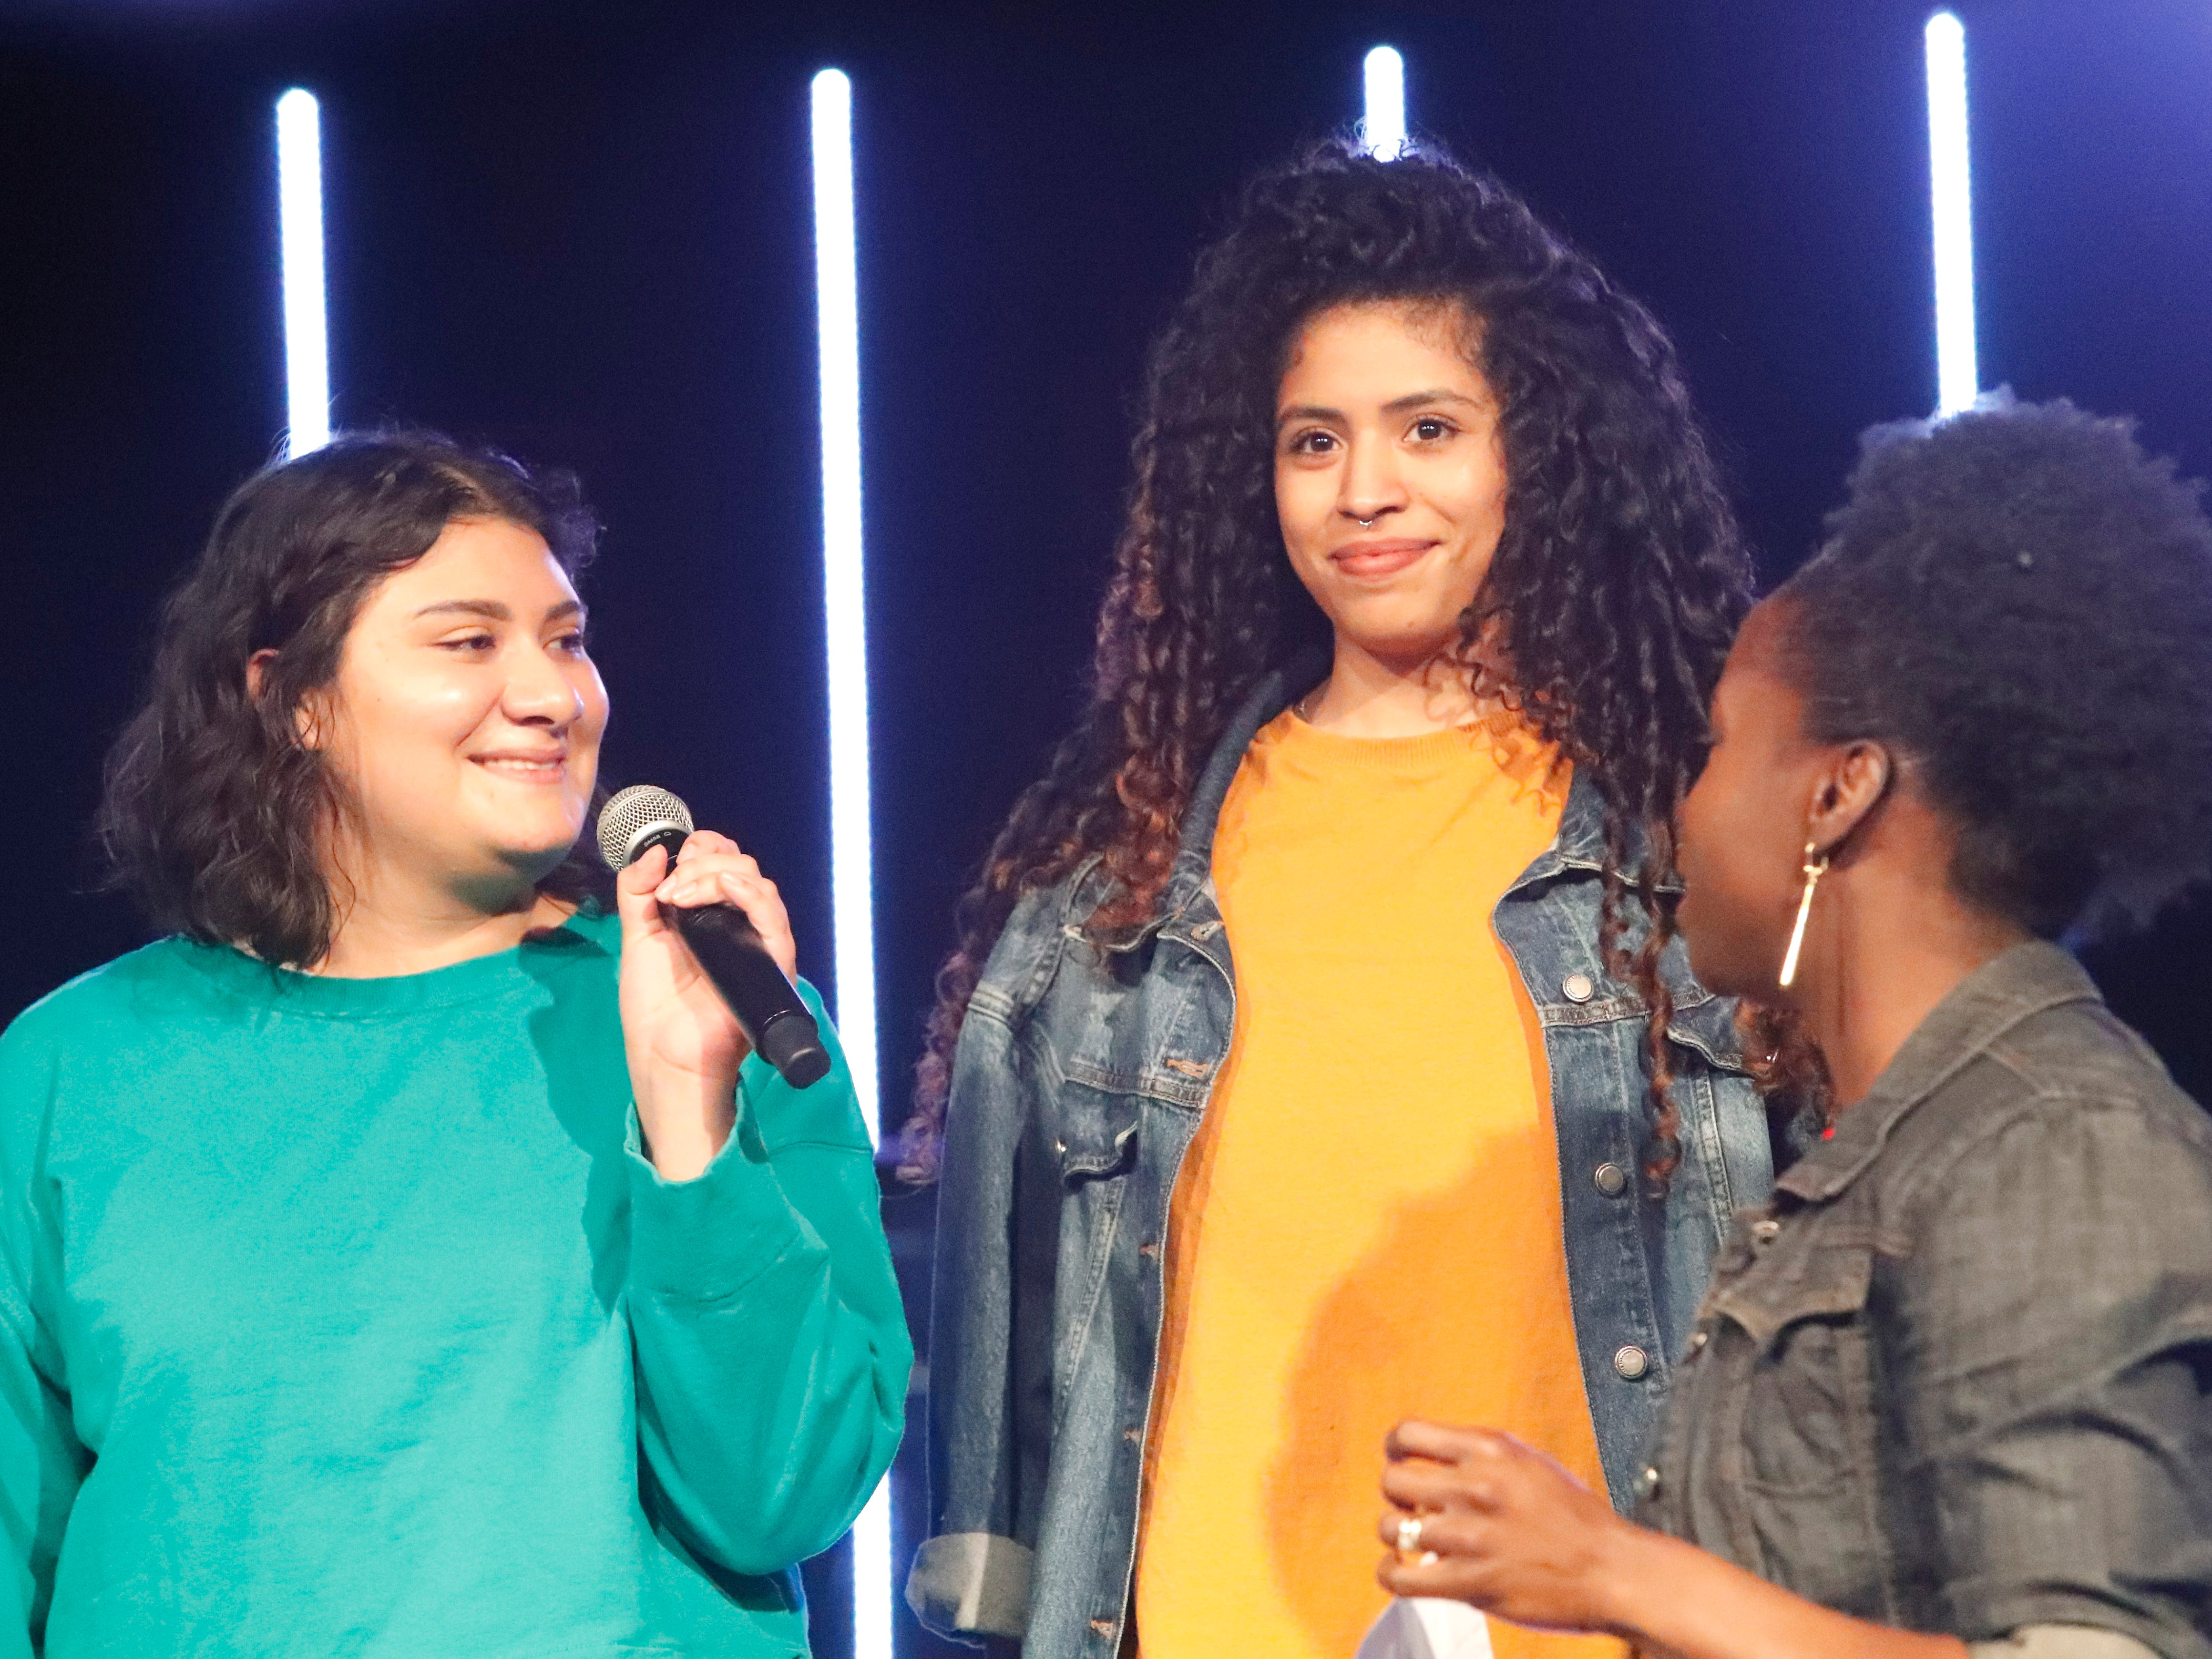 International students from Bethel Church's School of Supernatural Ministry present the Concert of the Nations on Thursday, March 14, 2019, in Redding. Pictured are Cindy Garcia Gomez, left to right, Karla Rodriguez Villar (Mexico) and emcee Jamila Olufemi Page.